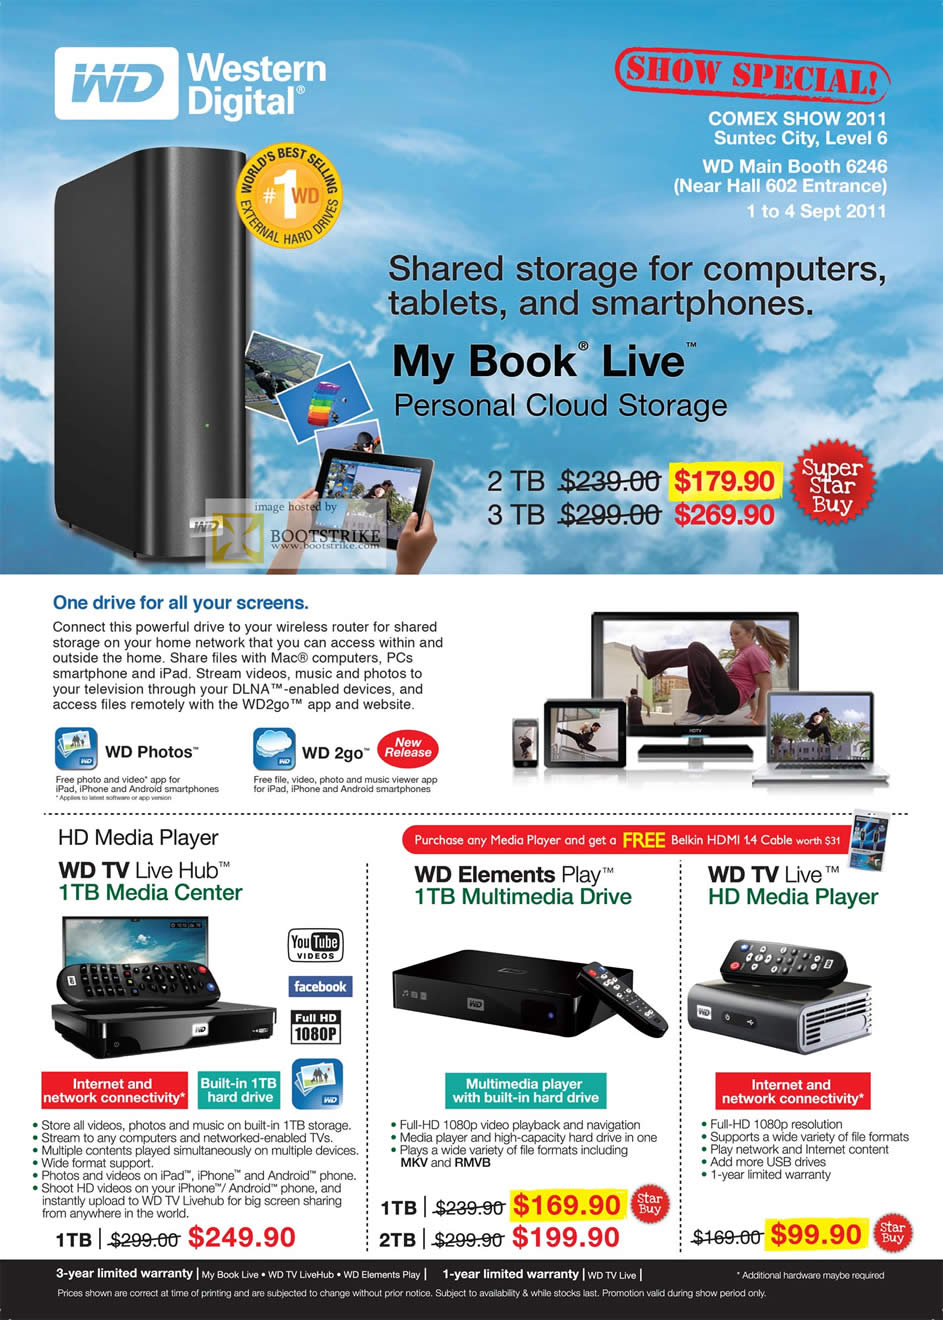 COMEX 2011 price list image brochure of Western Digital External Storage My Book Live Personal Cloud Storage Media Player TV Live Hub Play